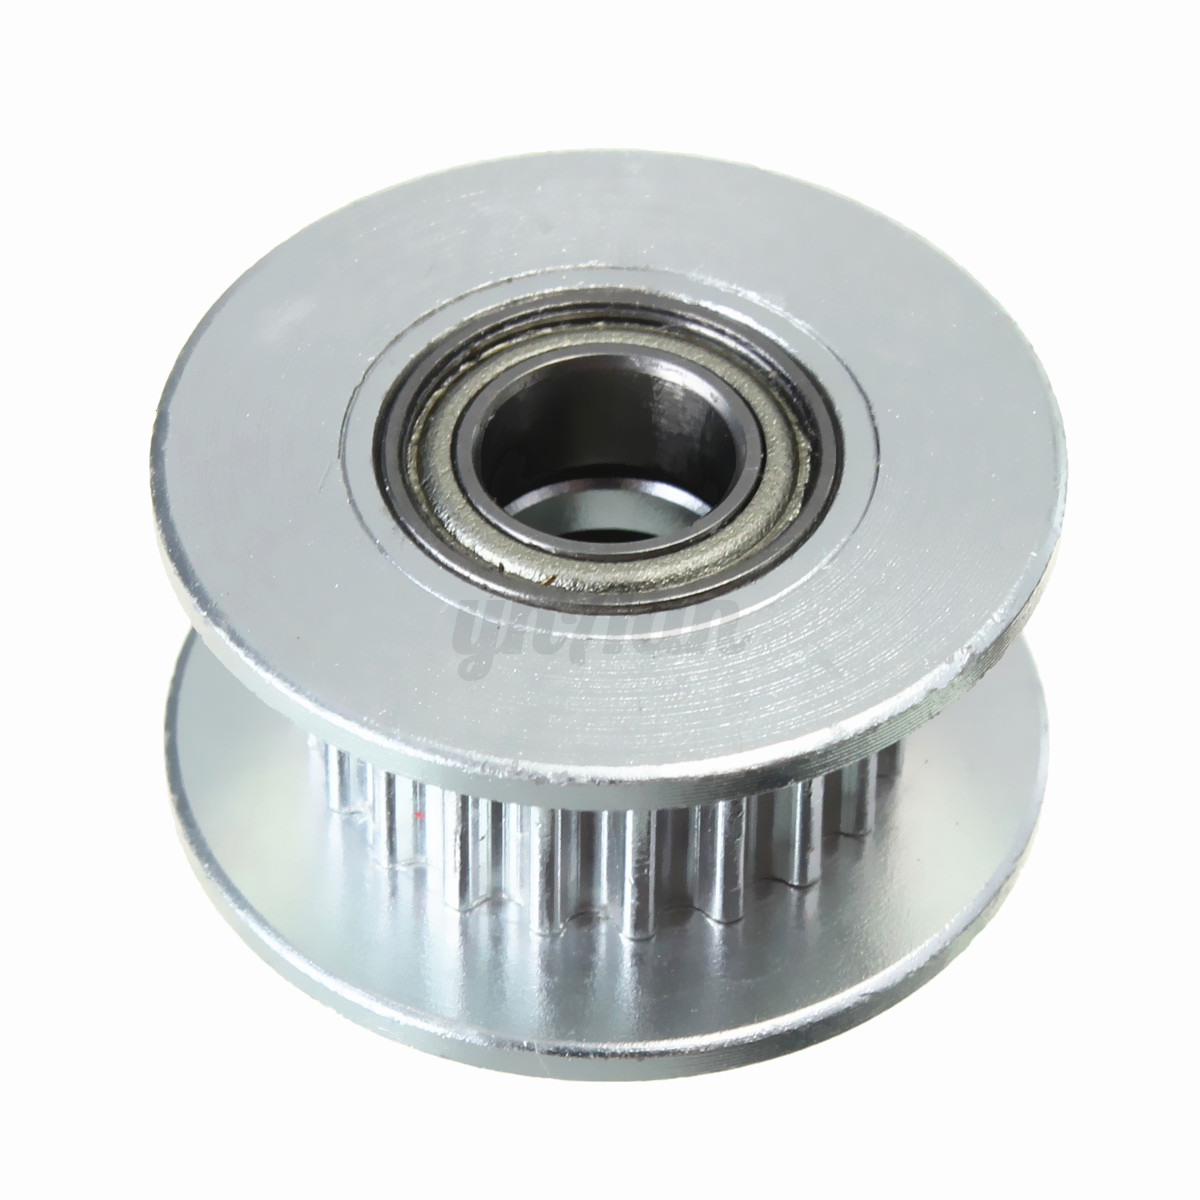 20t 5mm Gt2 Timing Belt Aluminum Drive Idler Pulley With